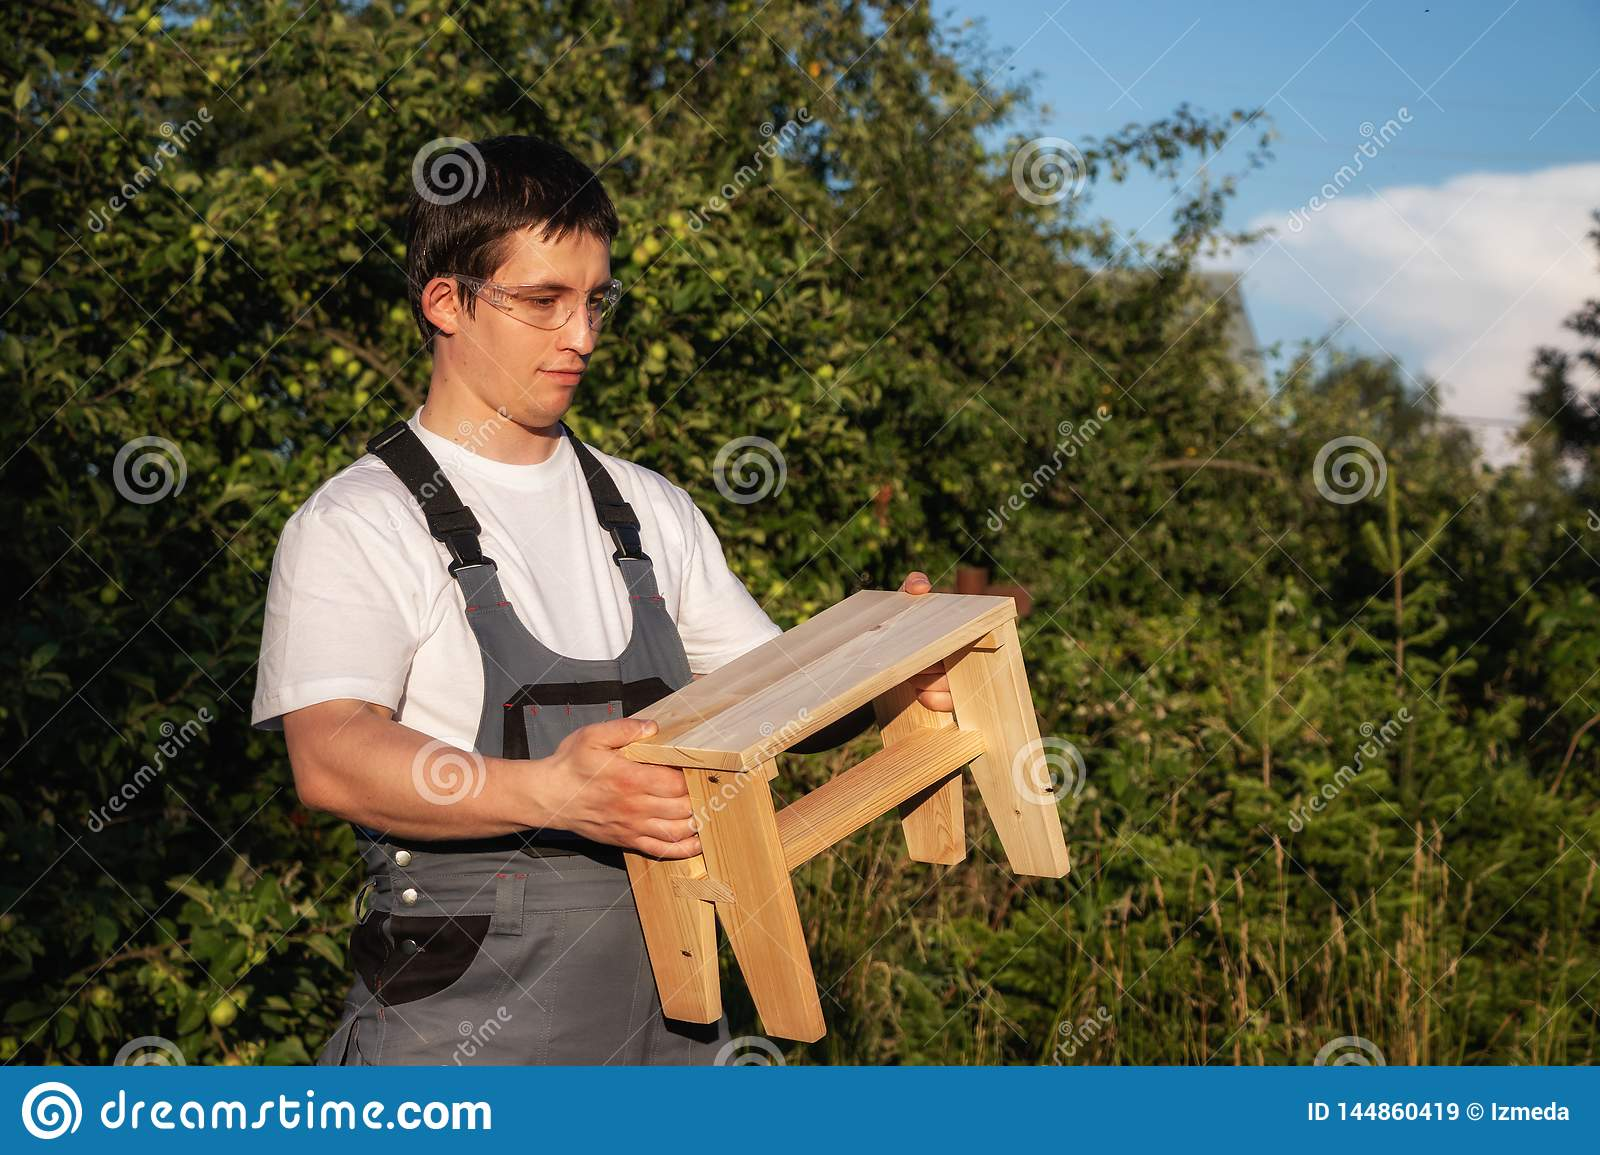 Surprising A Male Carpenter Is Holding A Wooden Stool Stock Image Ocoug Best Dining Table And Chair Ideas Images Ocougorg